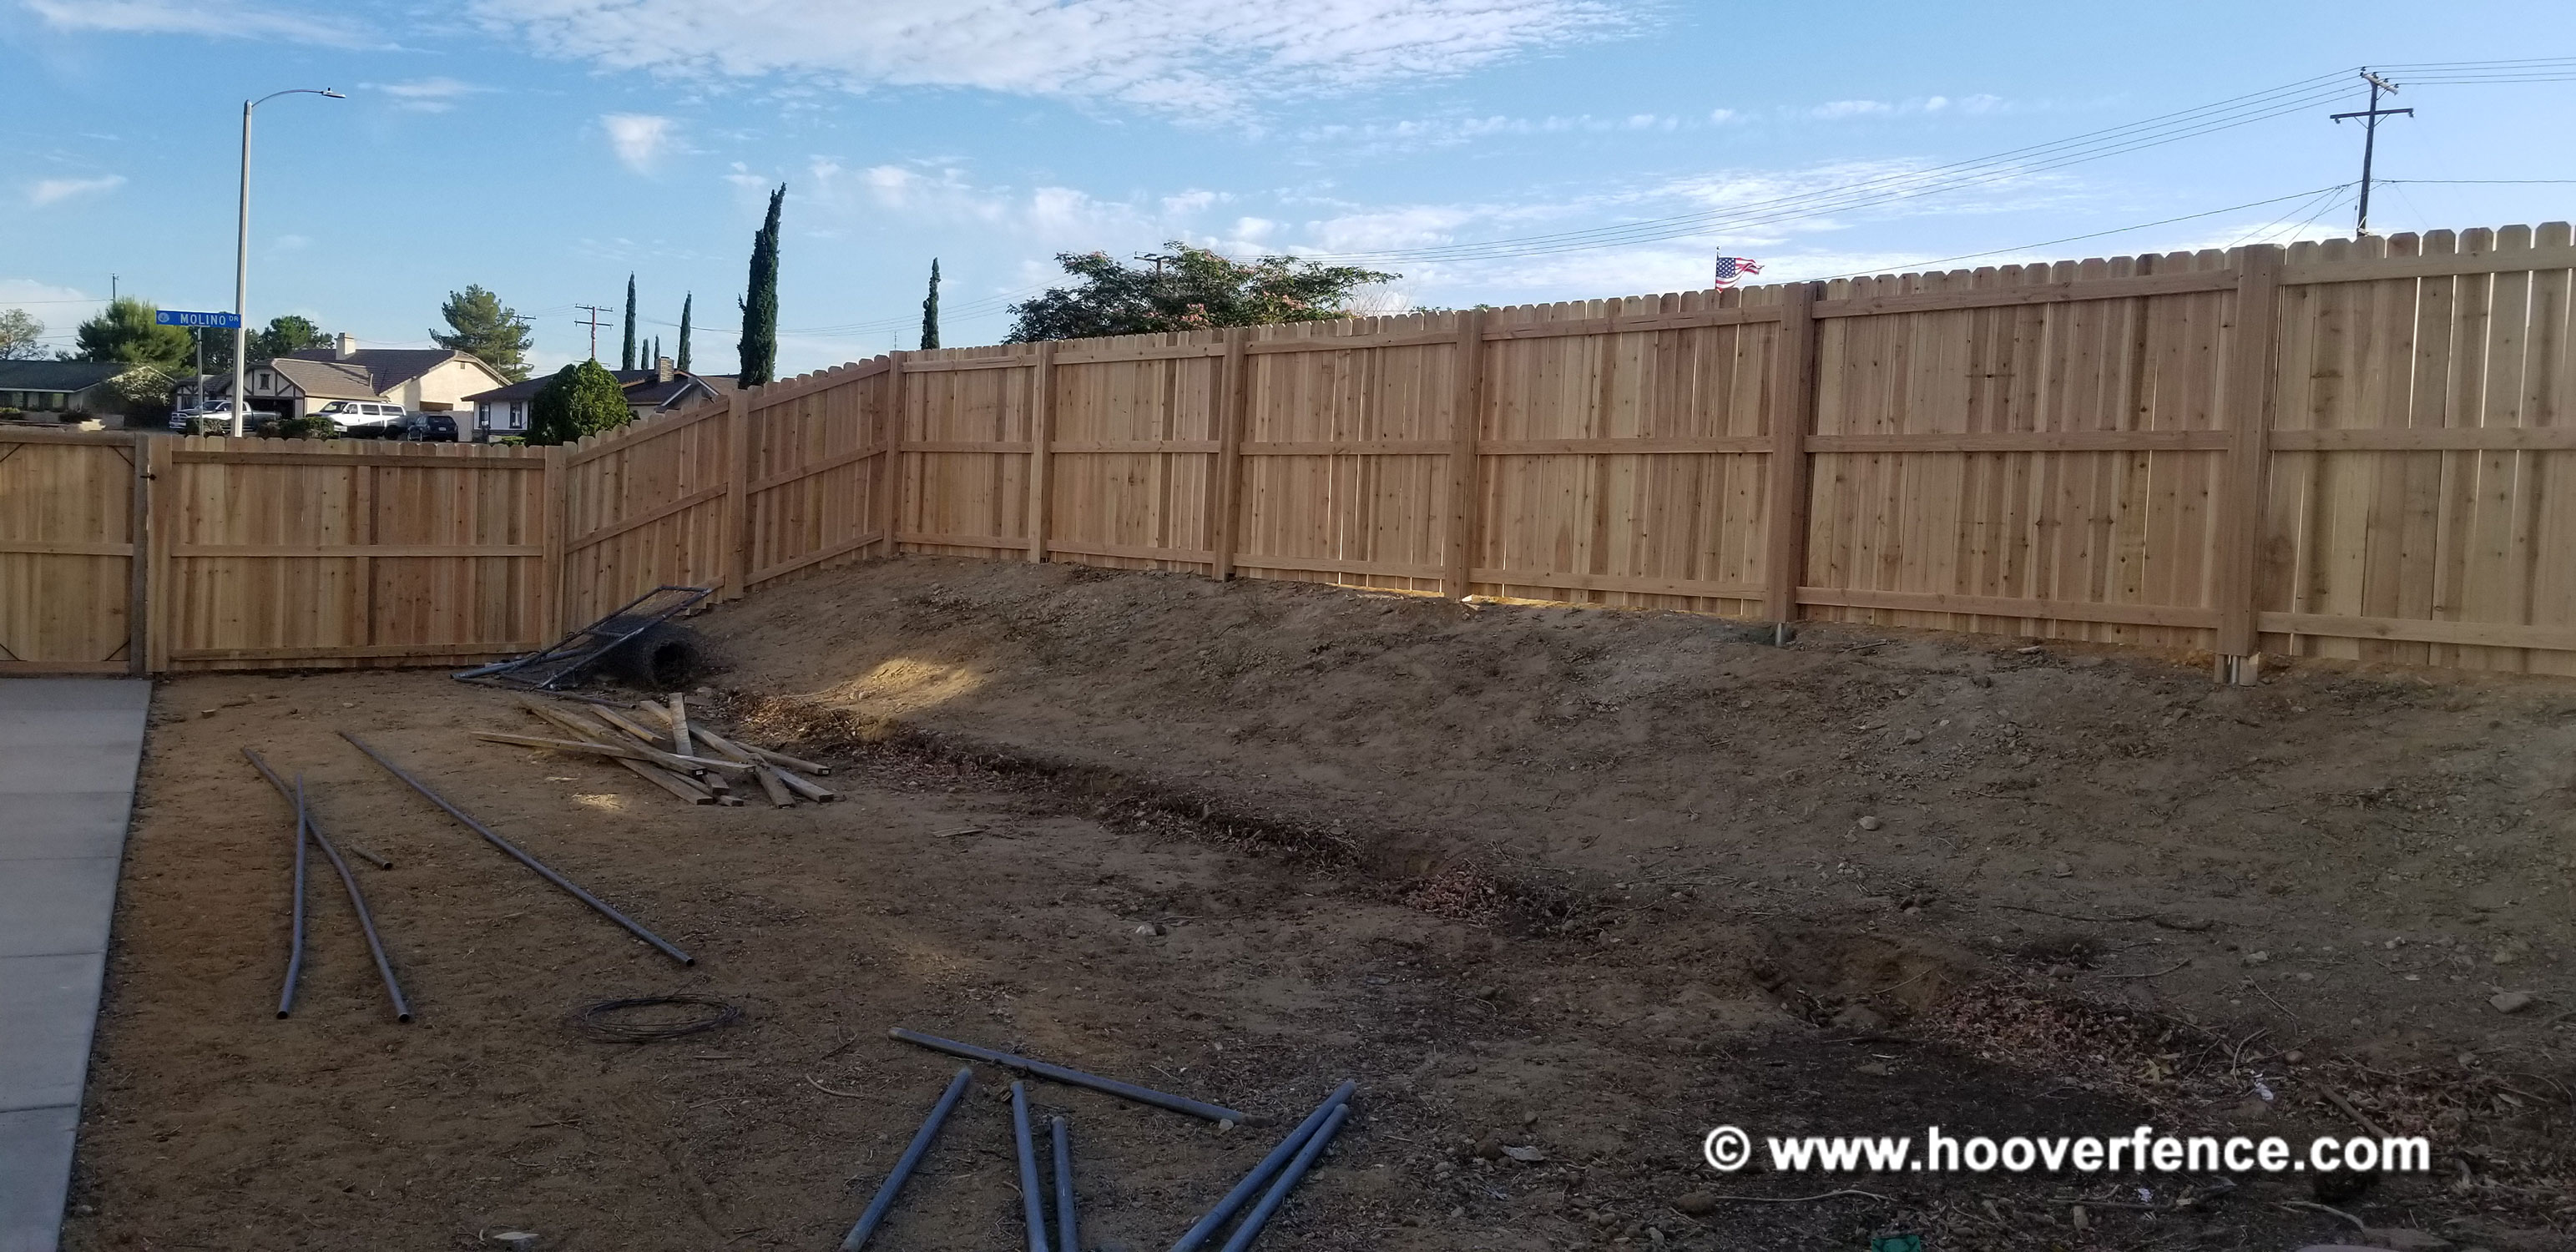 Customer Photo - 6'H Dog Ear Wood Fence Installed with Chain Link Fence Posts and IS-FBL-L Fence Brackets